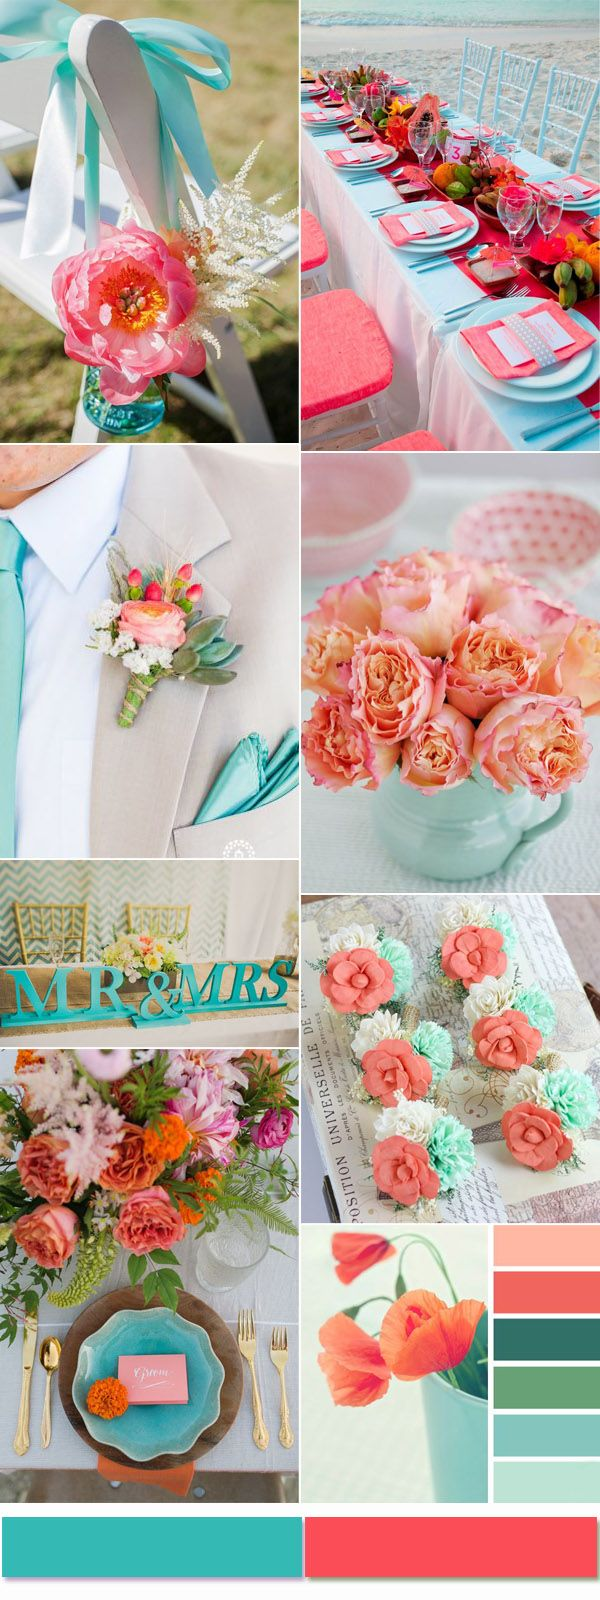 Design Coral Color Scheme 59 best coral wedding ideas images on pinterest navy weddings colors and marriage